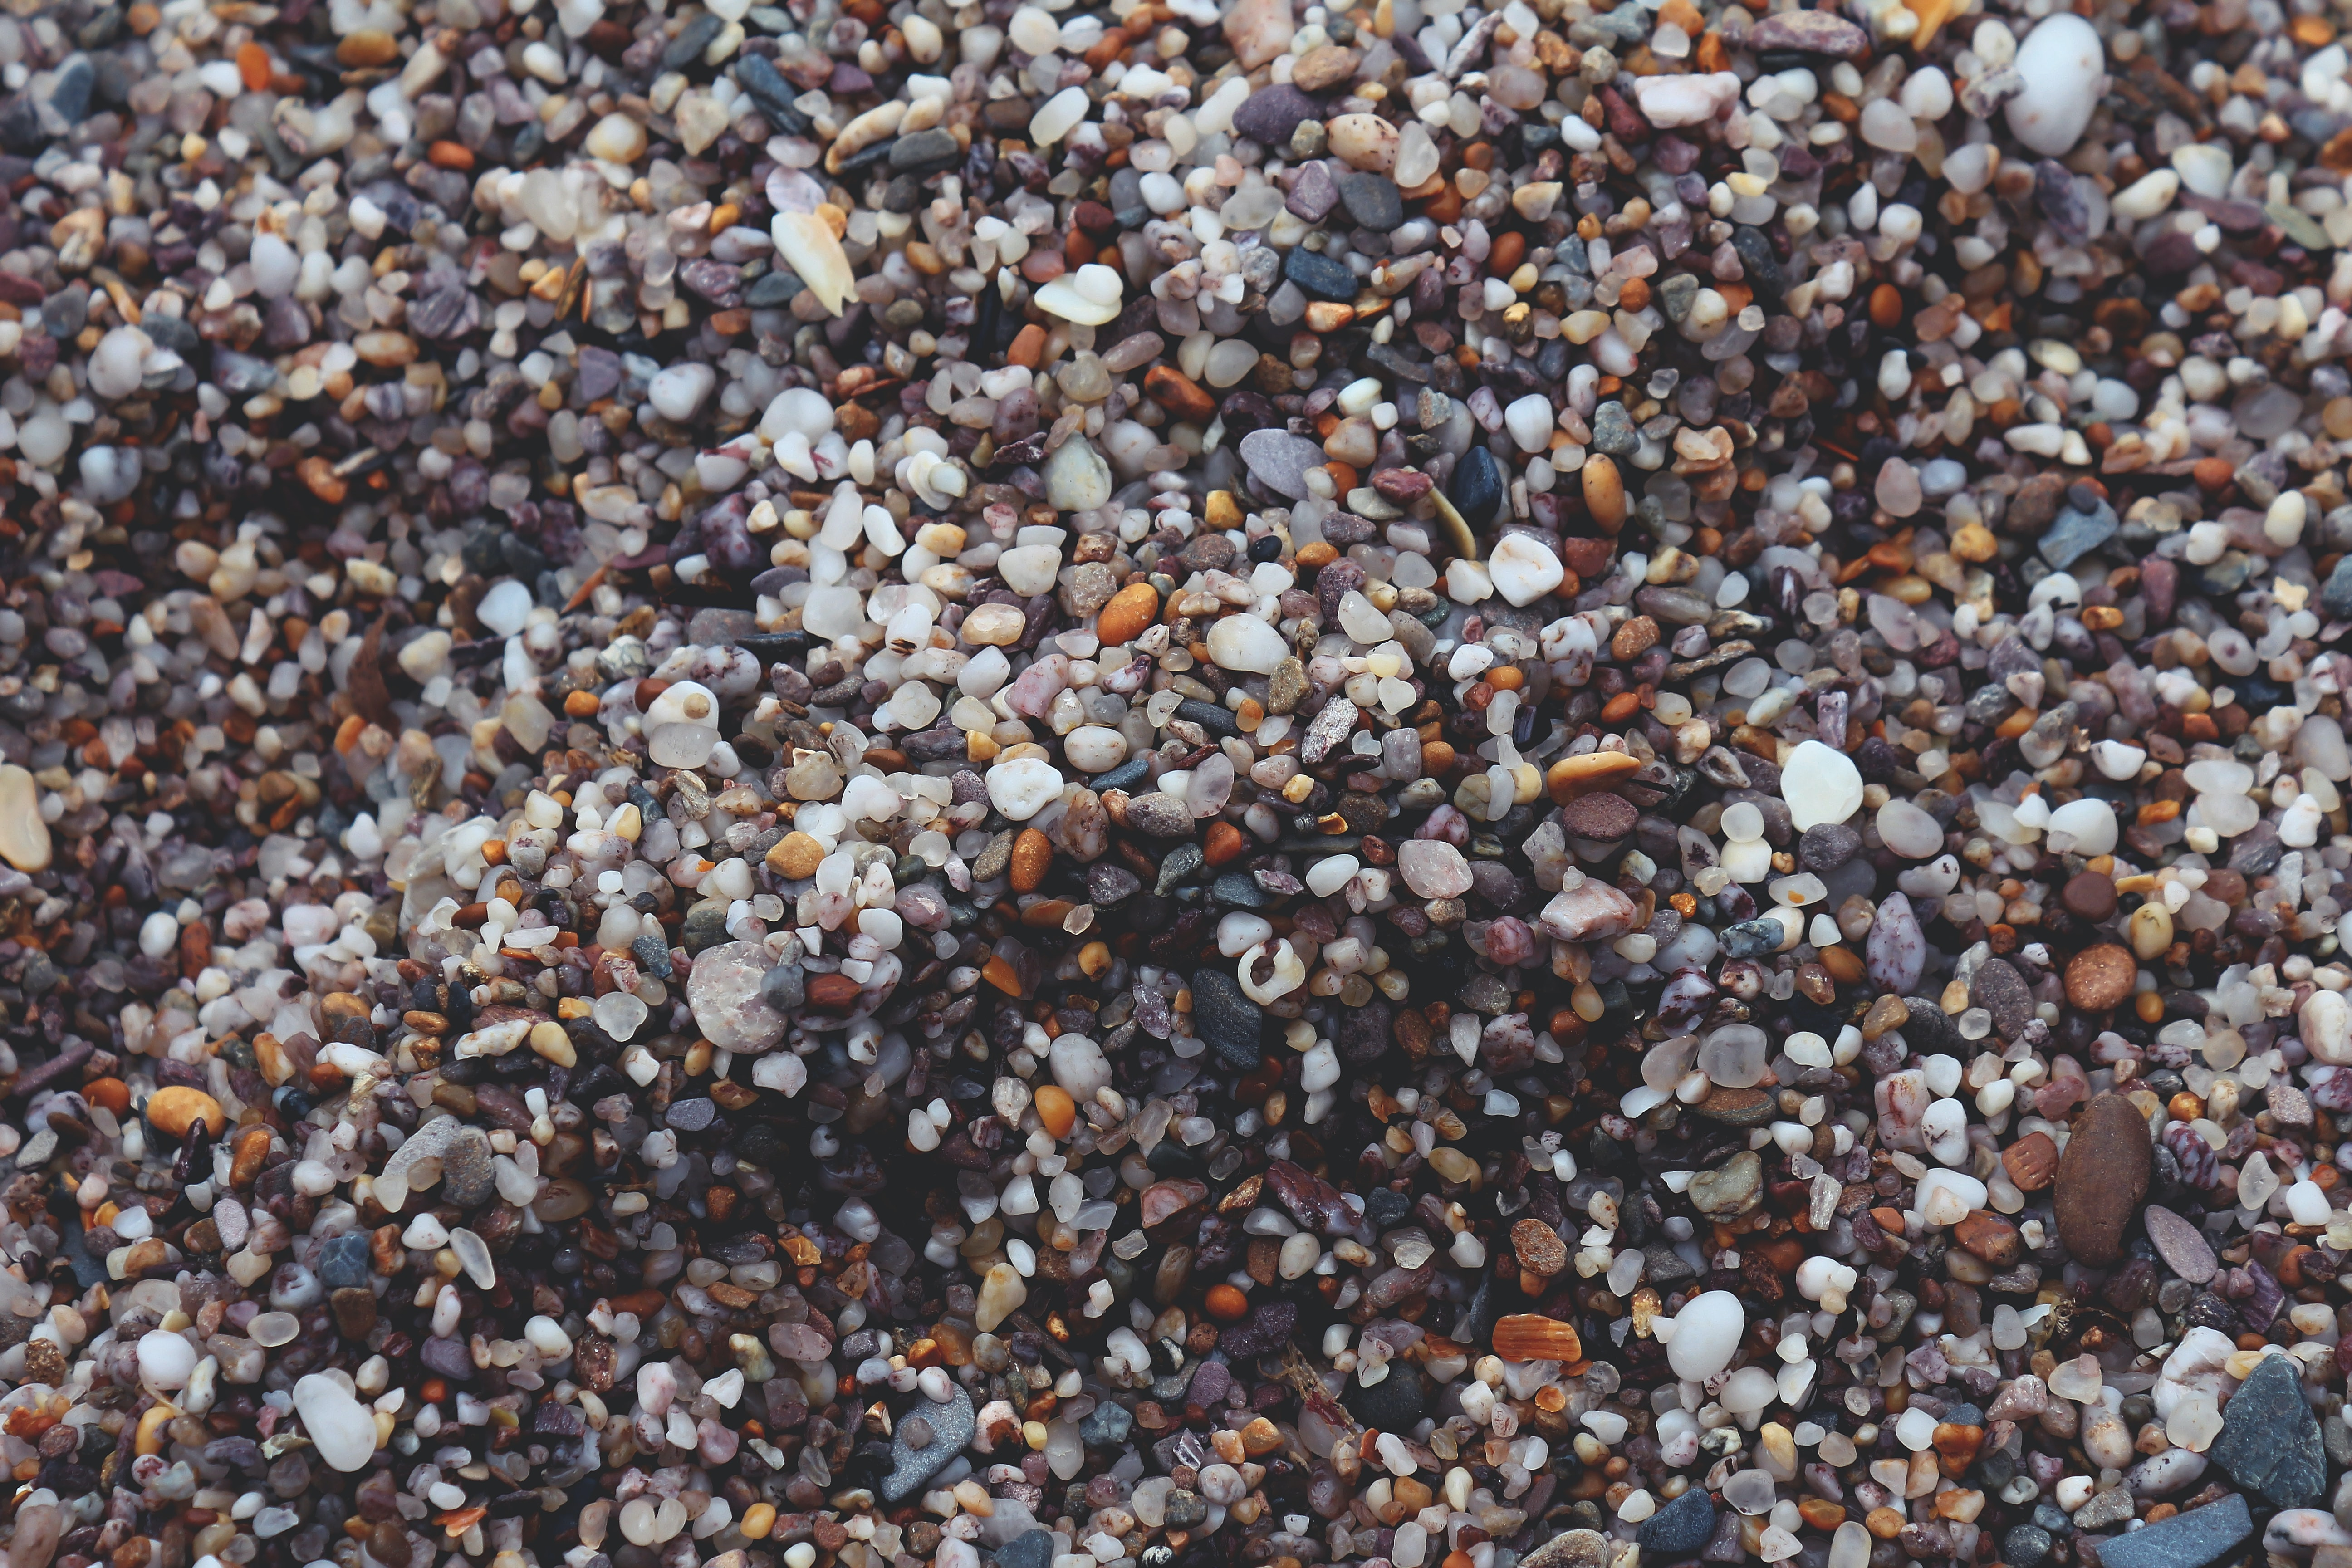 A top view of a large number of pebbles of various color, shape and size